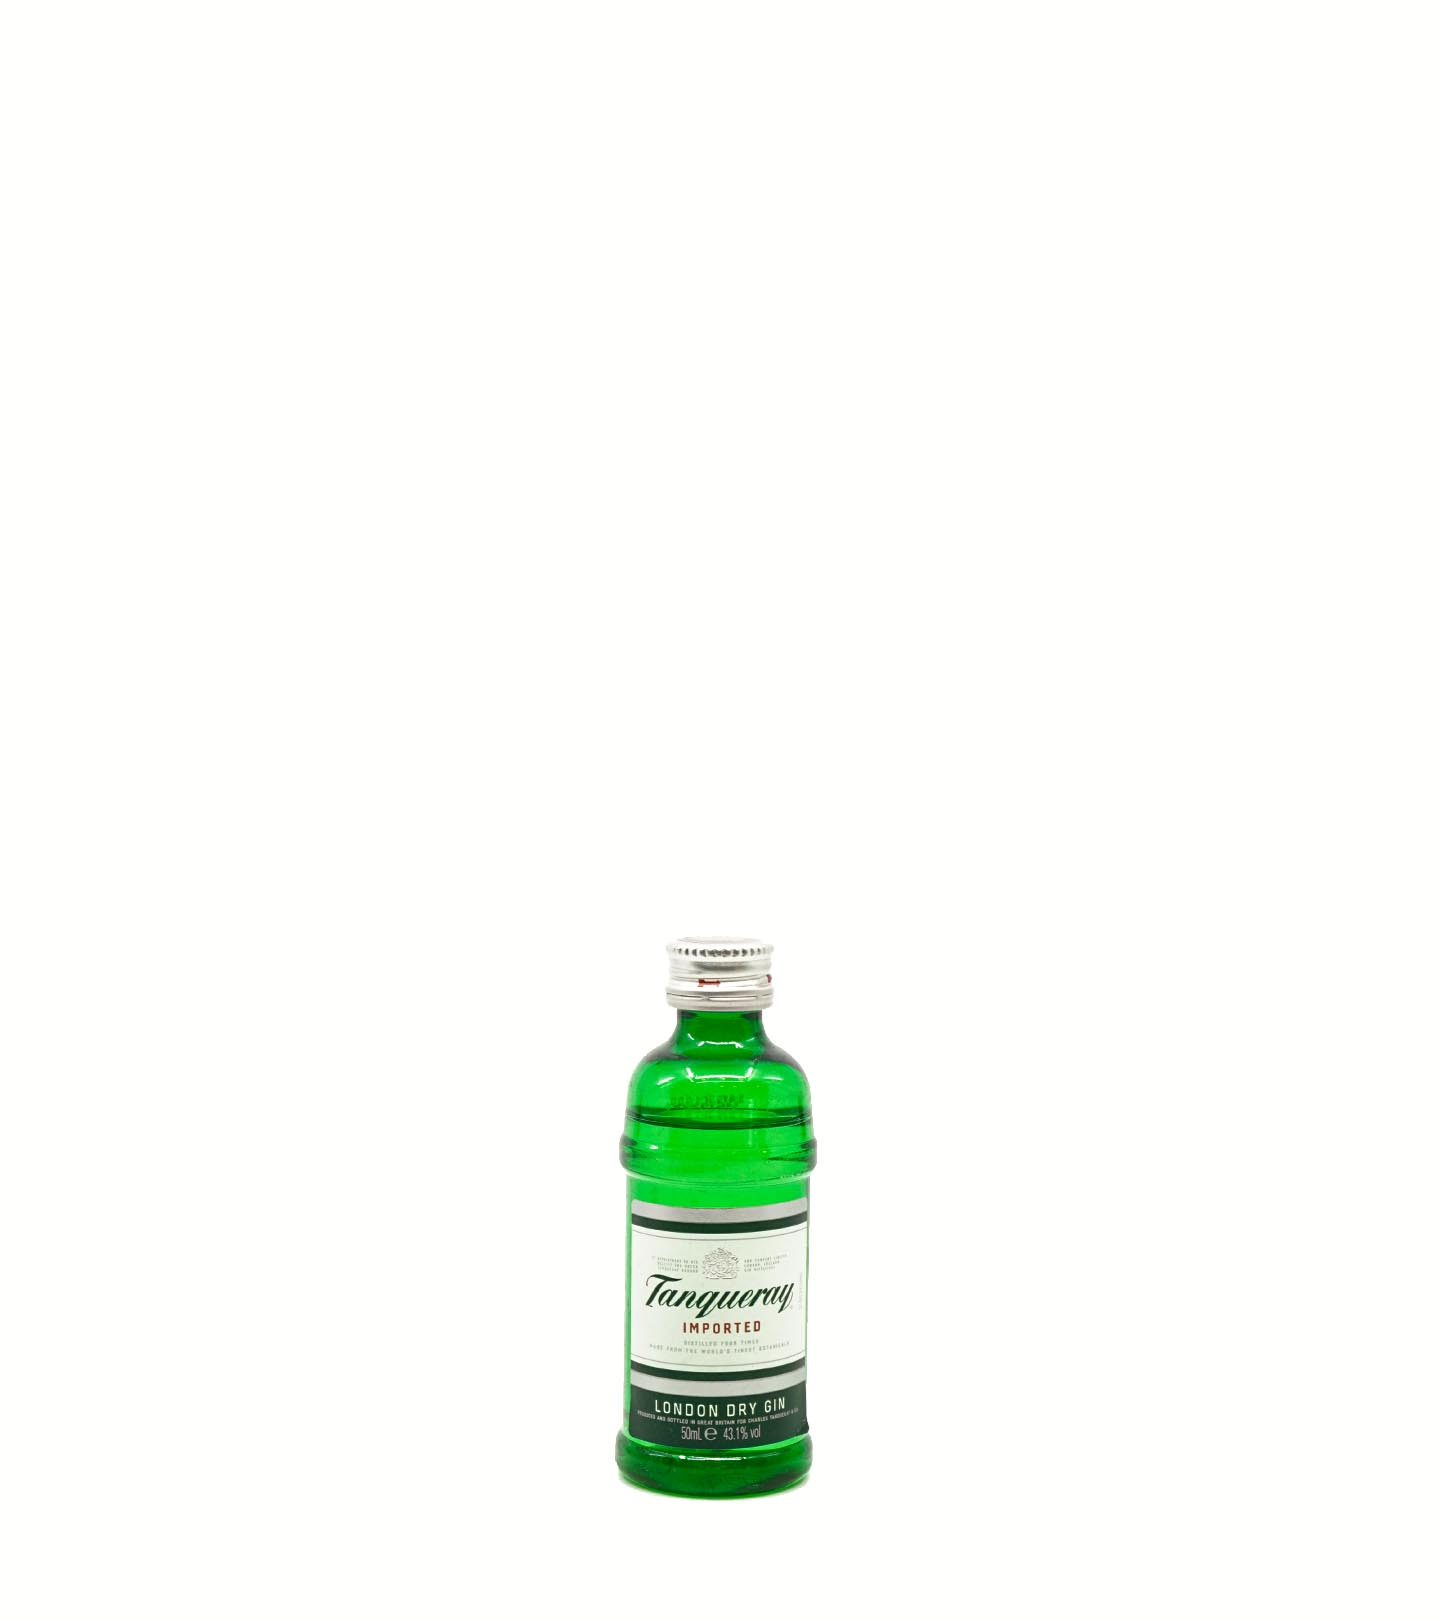 Gin Tanqueray 5cl